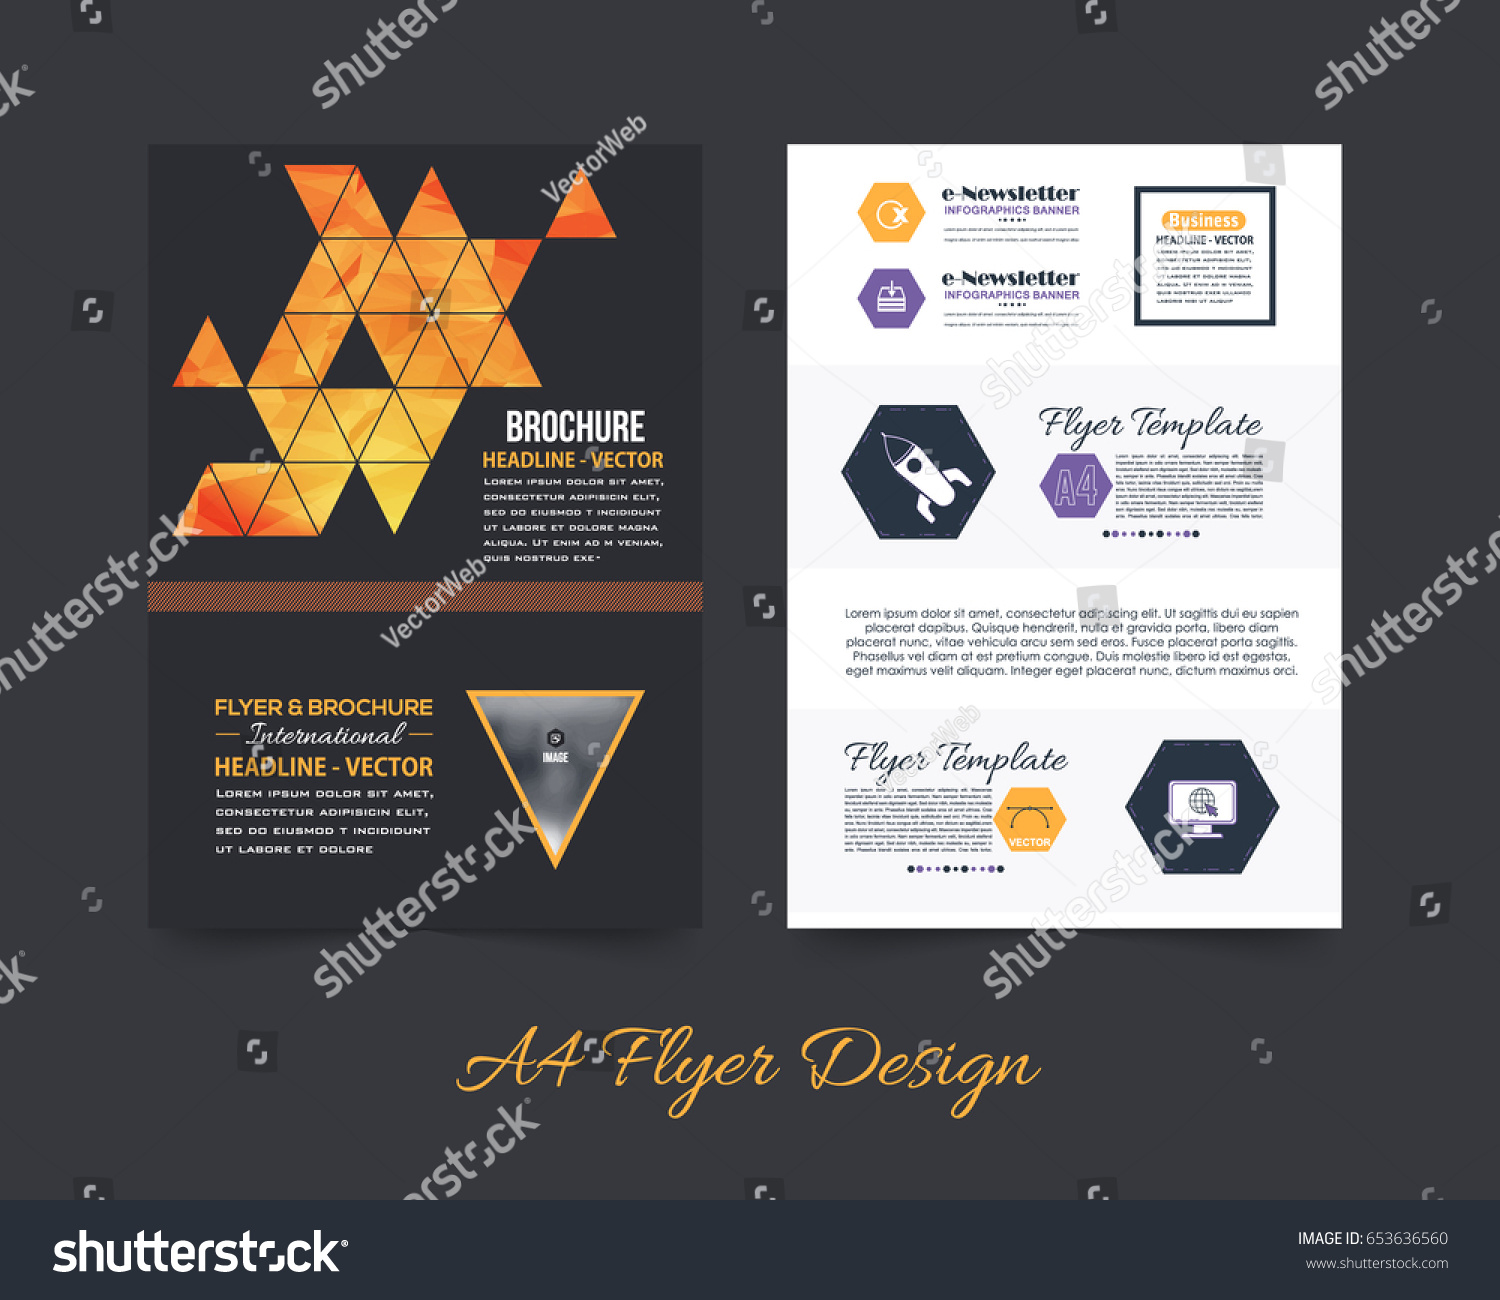 Business pamphlet polygonal booklet template a 4 stock vector business pamphlet or polygonal booklet template a4 document and vector background flyer geometric low accmission Images